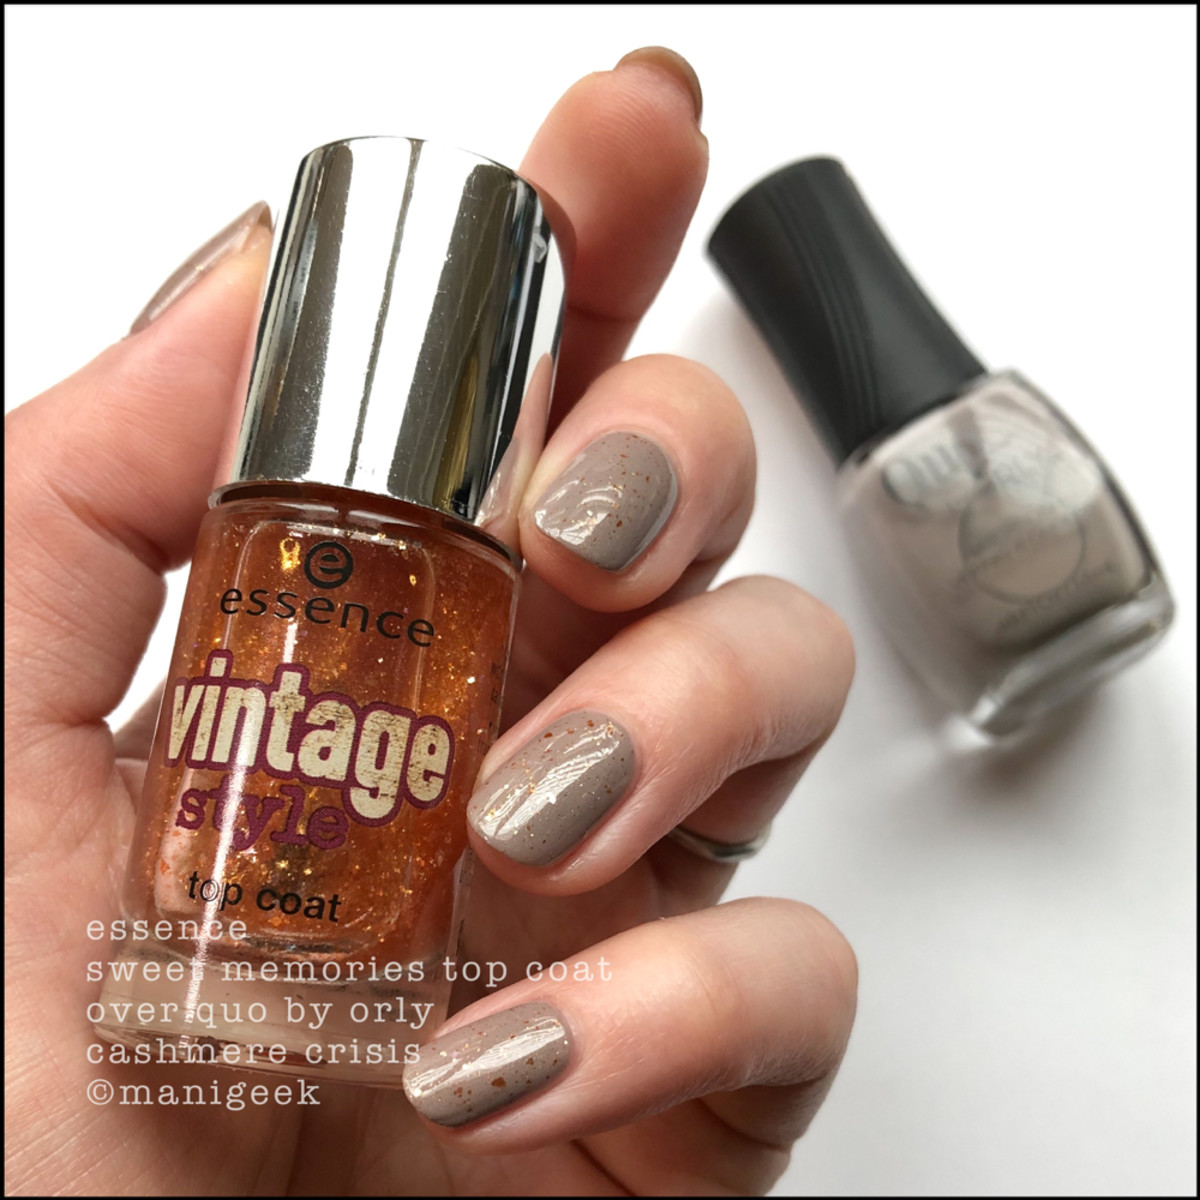 Quo by Orly Cashmere Crisis w Essence Sweet Memories Top Coat